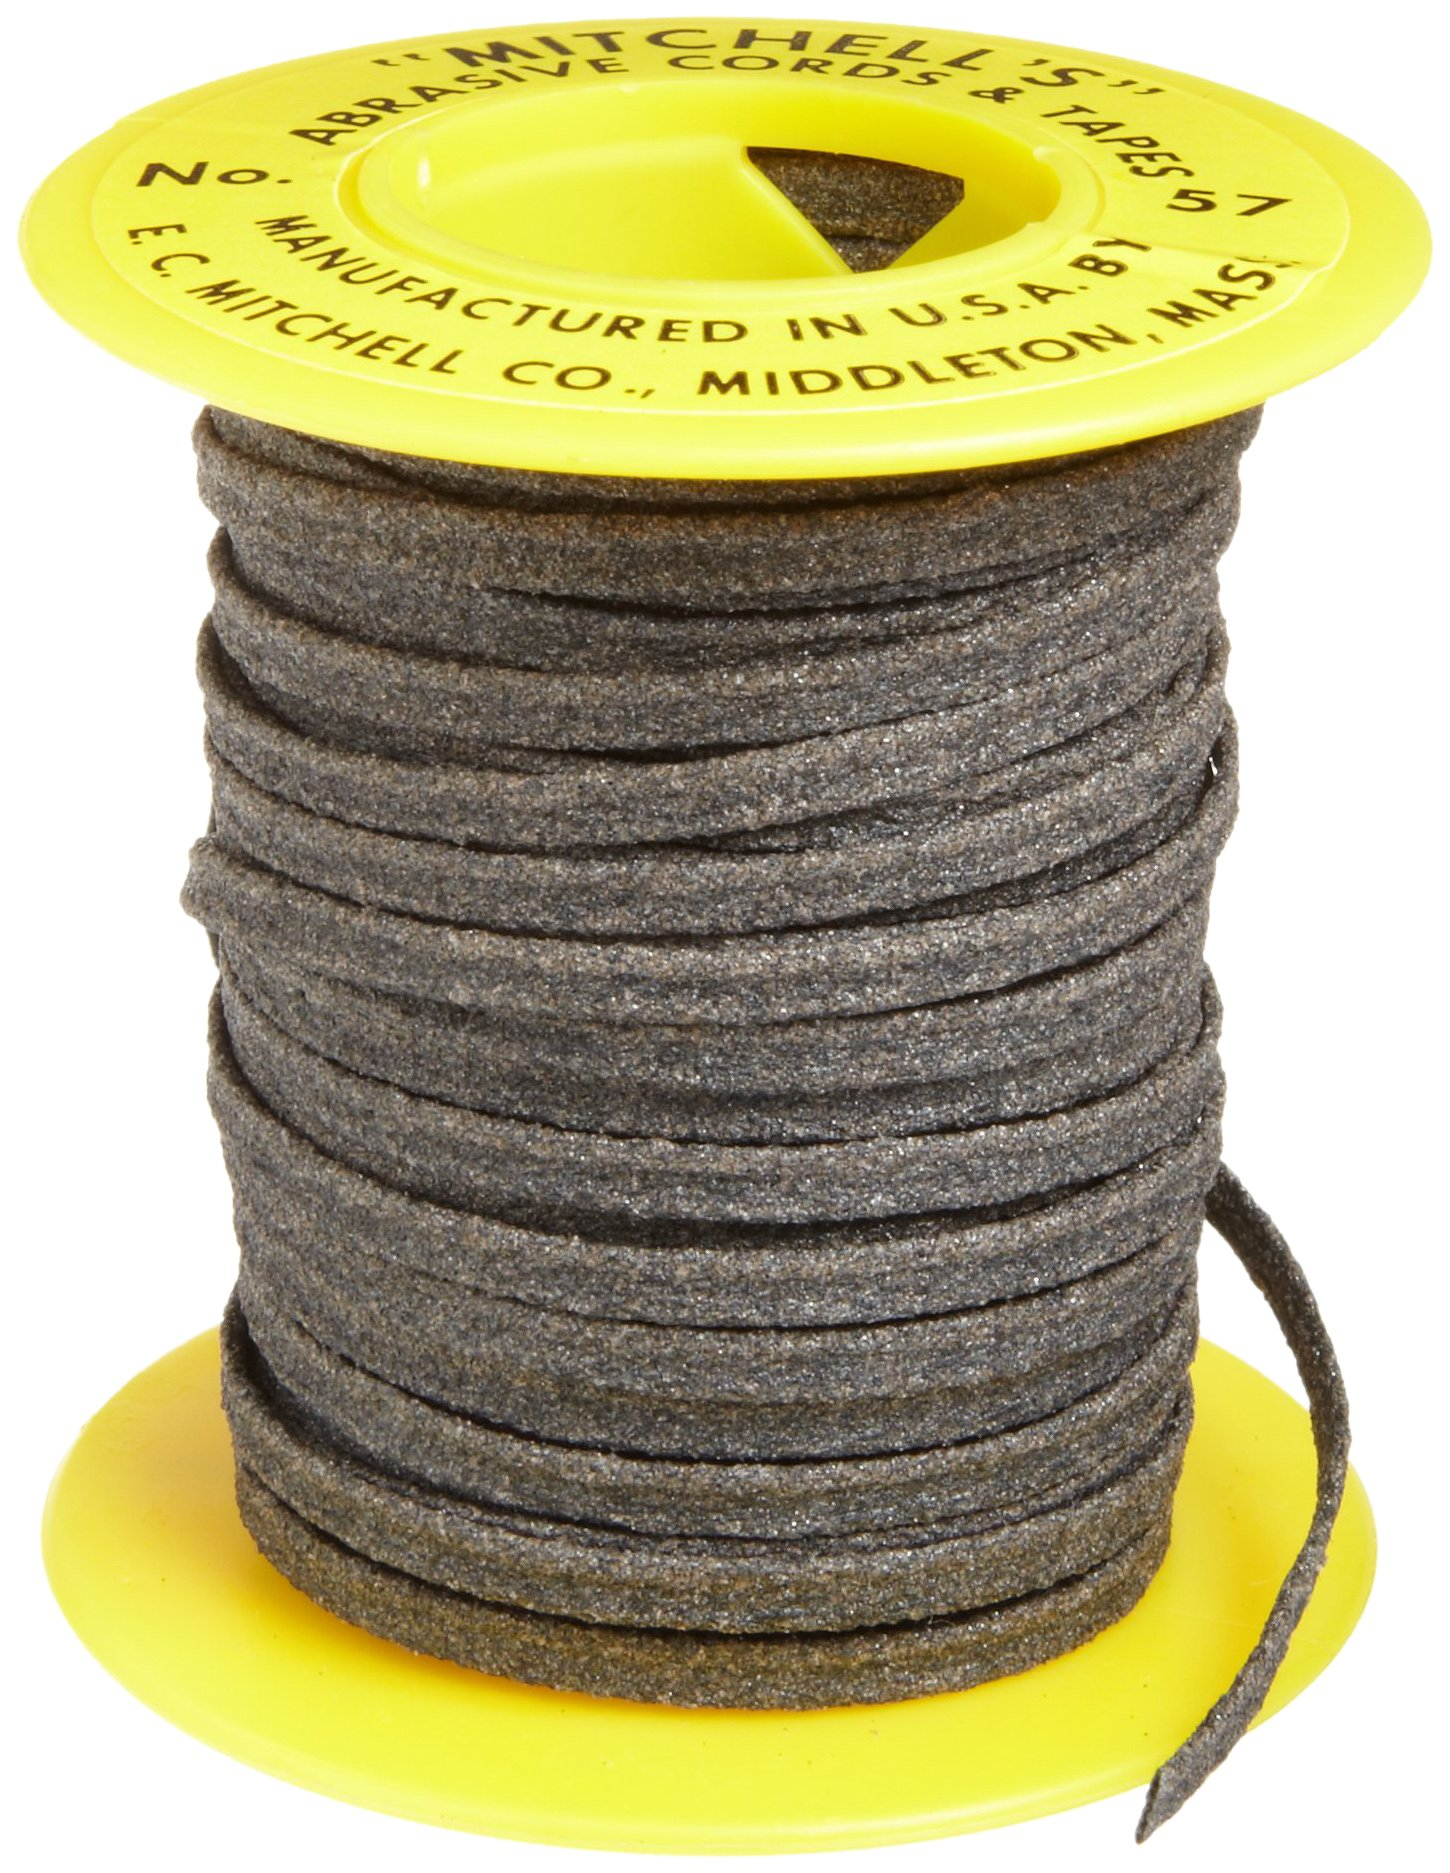 Mitchell Abrasives 57 Flat Abrasive Tape, Aluminum Oxide 150 Grit 1/8'' Wide x 25 Feet by Mitchell Abrasives